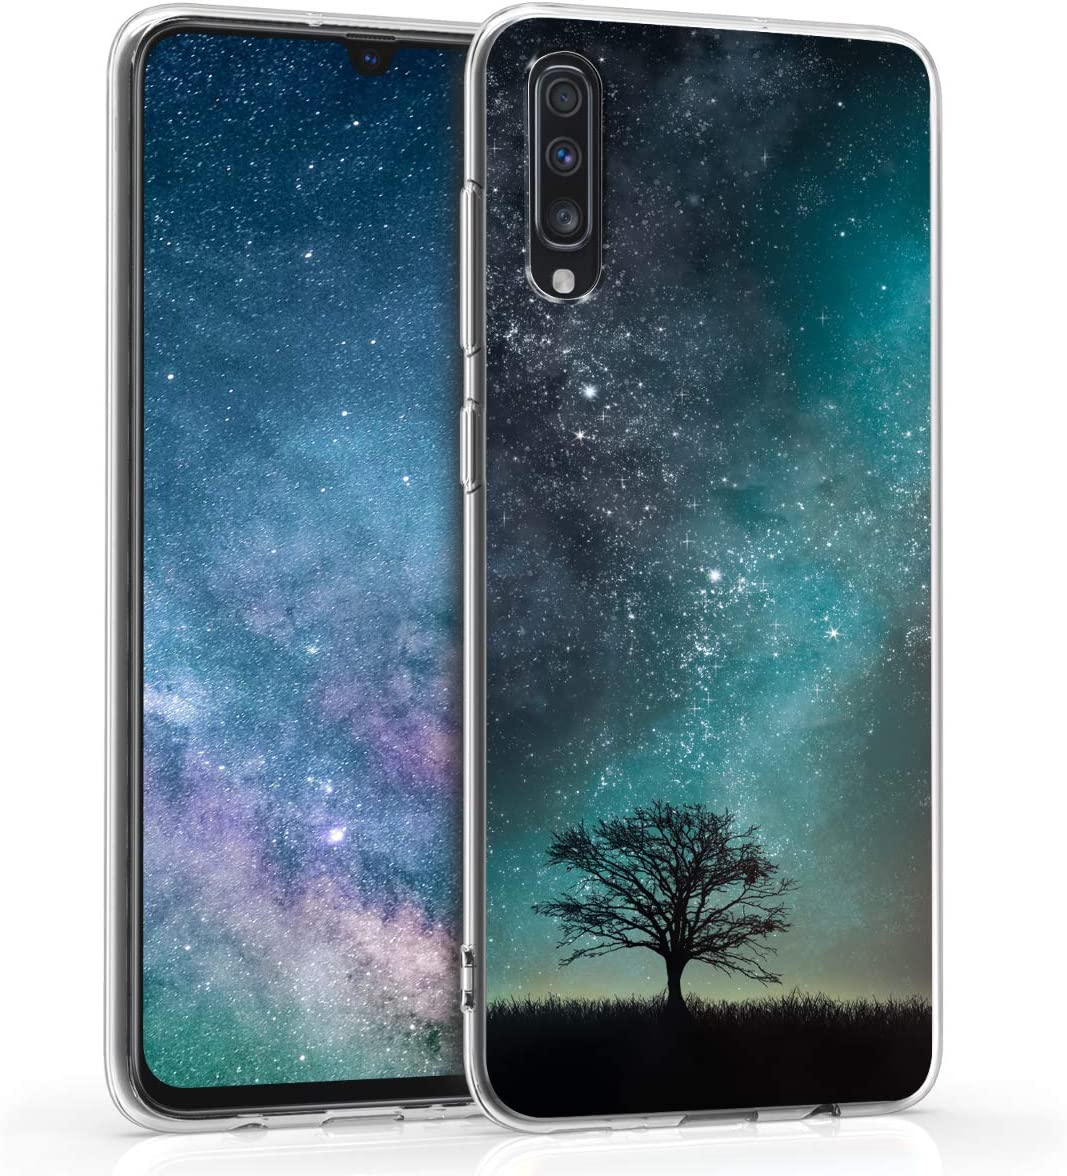 kwmobile Case Compatible with Samsung Galaxy A70 - TPU Crystal Clear Back Protective Cover IMD Design - Cosmic Nature Blue/Grey/Black